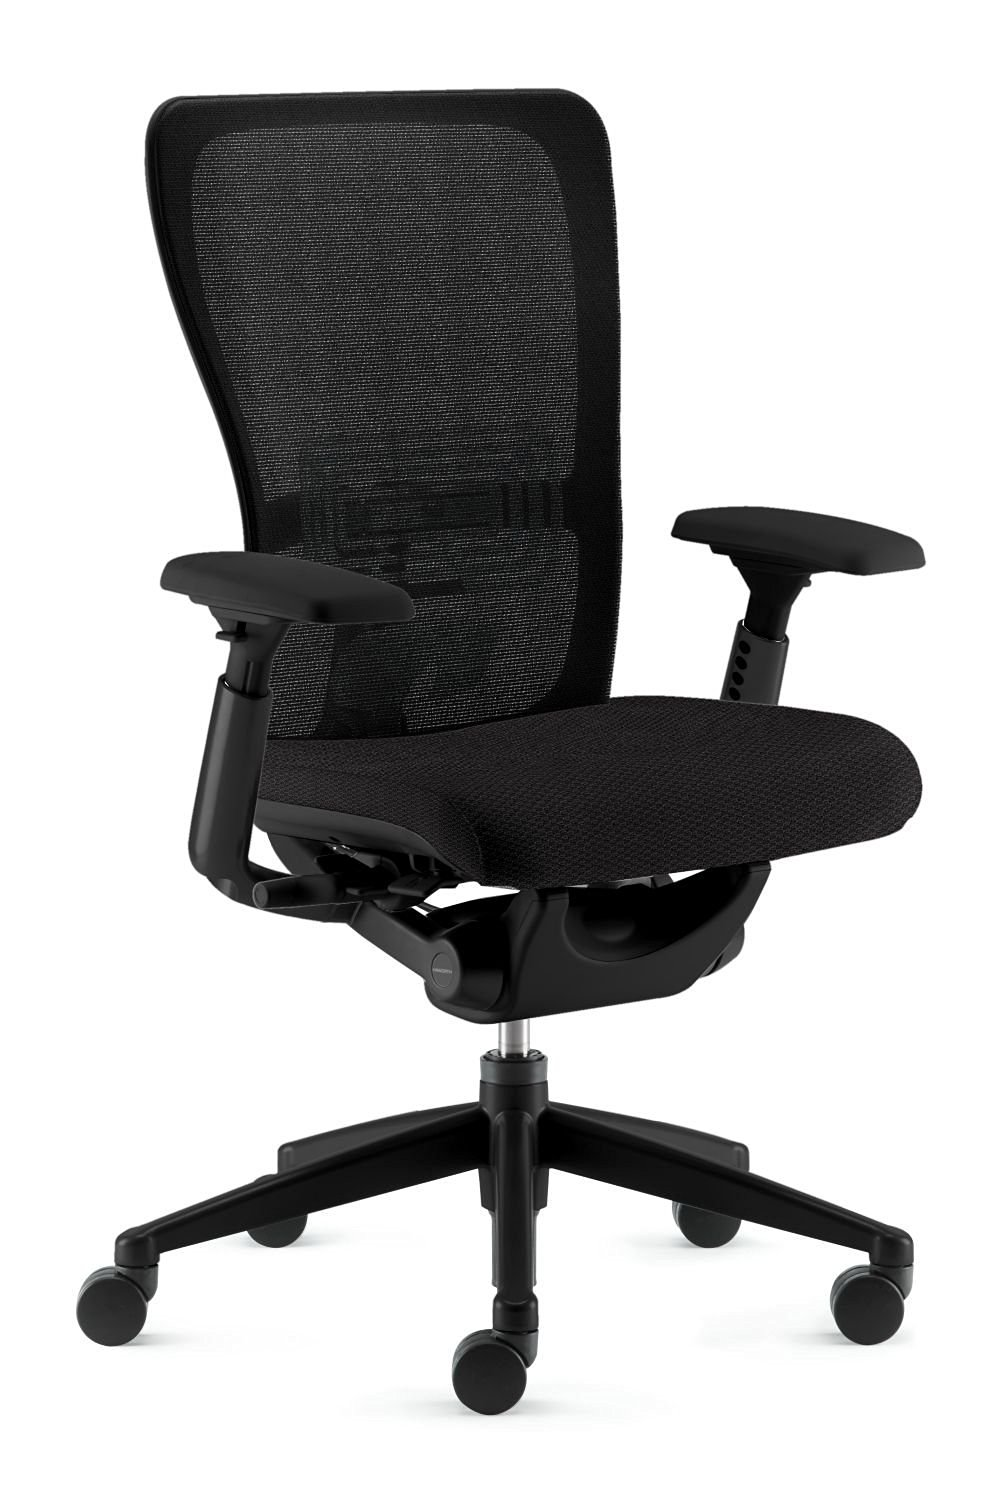 Haworth Zody Chair Review